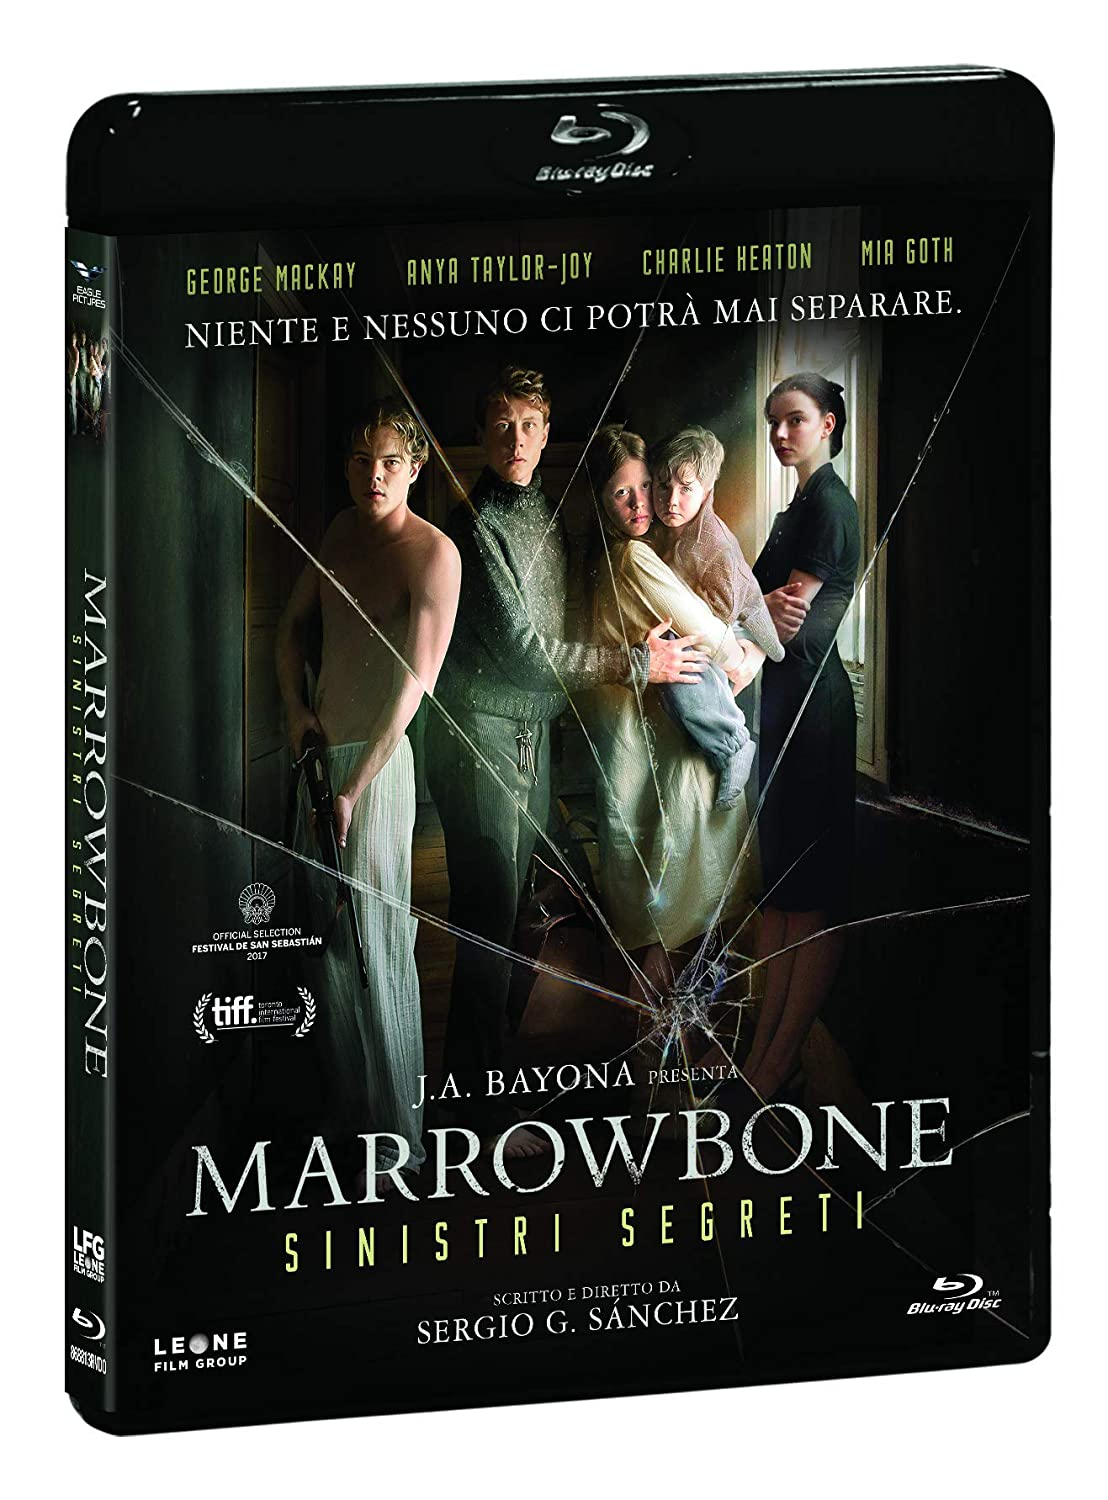 MARROWBONE - SINISTRI SEGRETI - BLU RAY